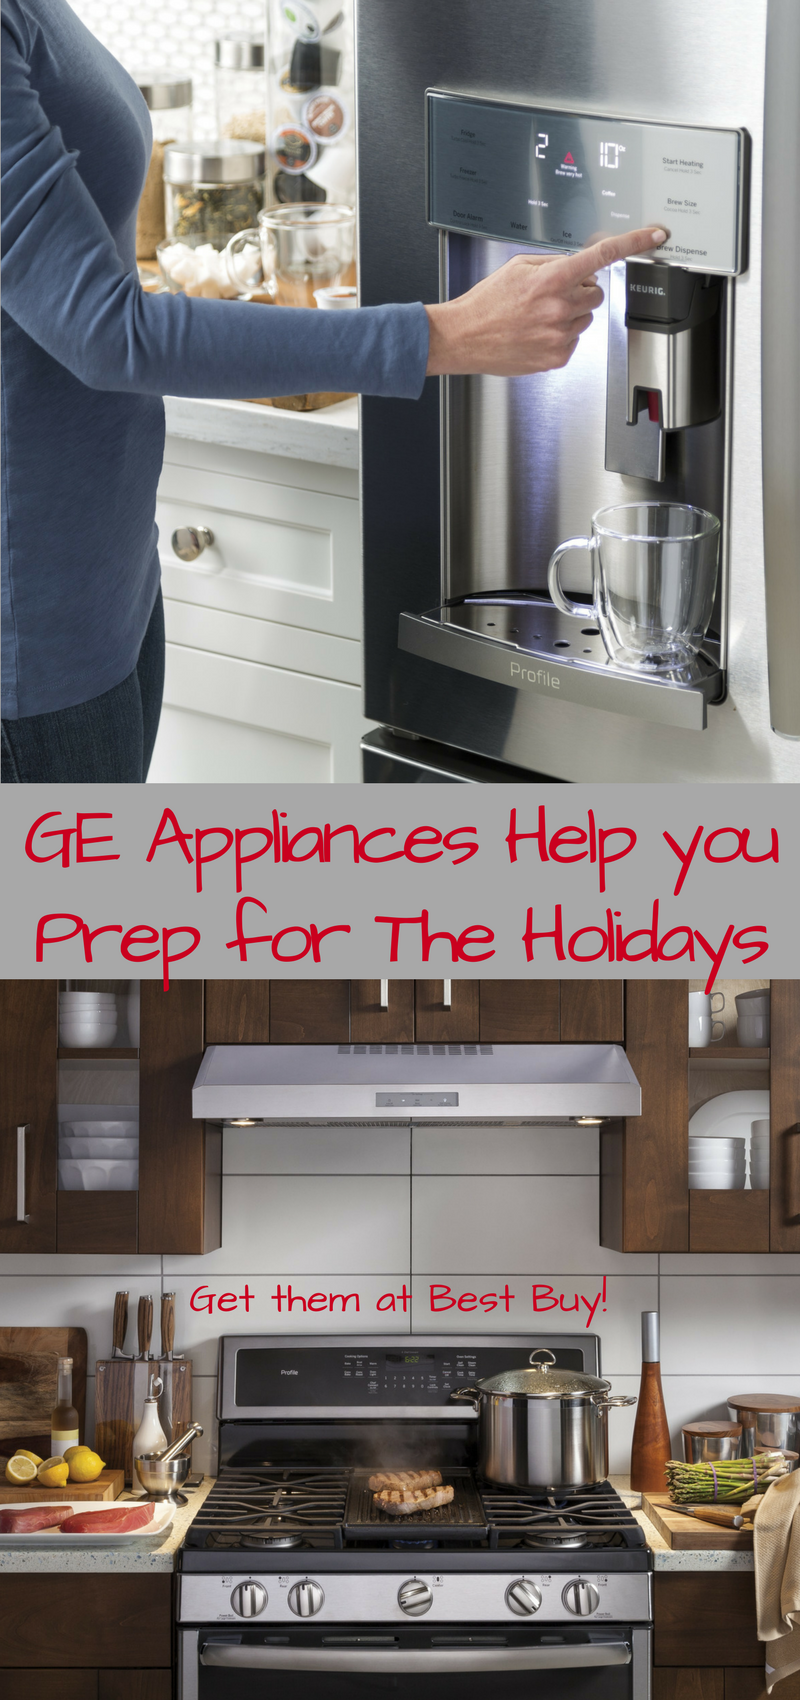 GE Appliances Help you Prep for the Holidays